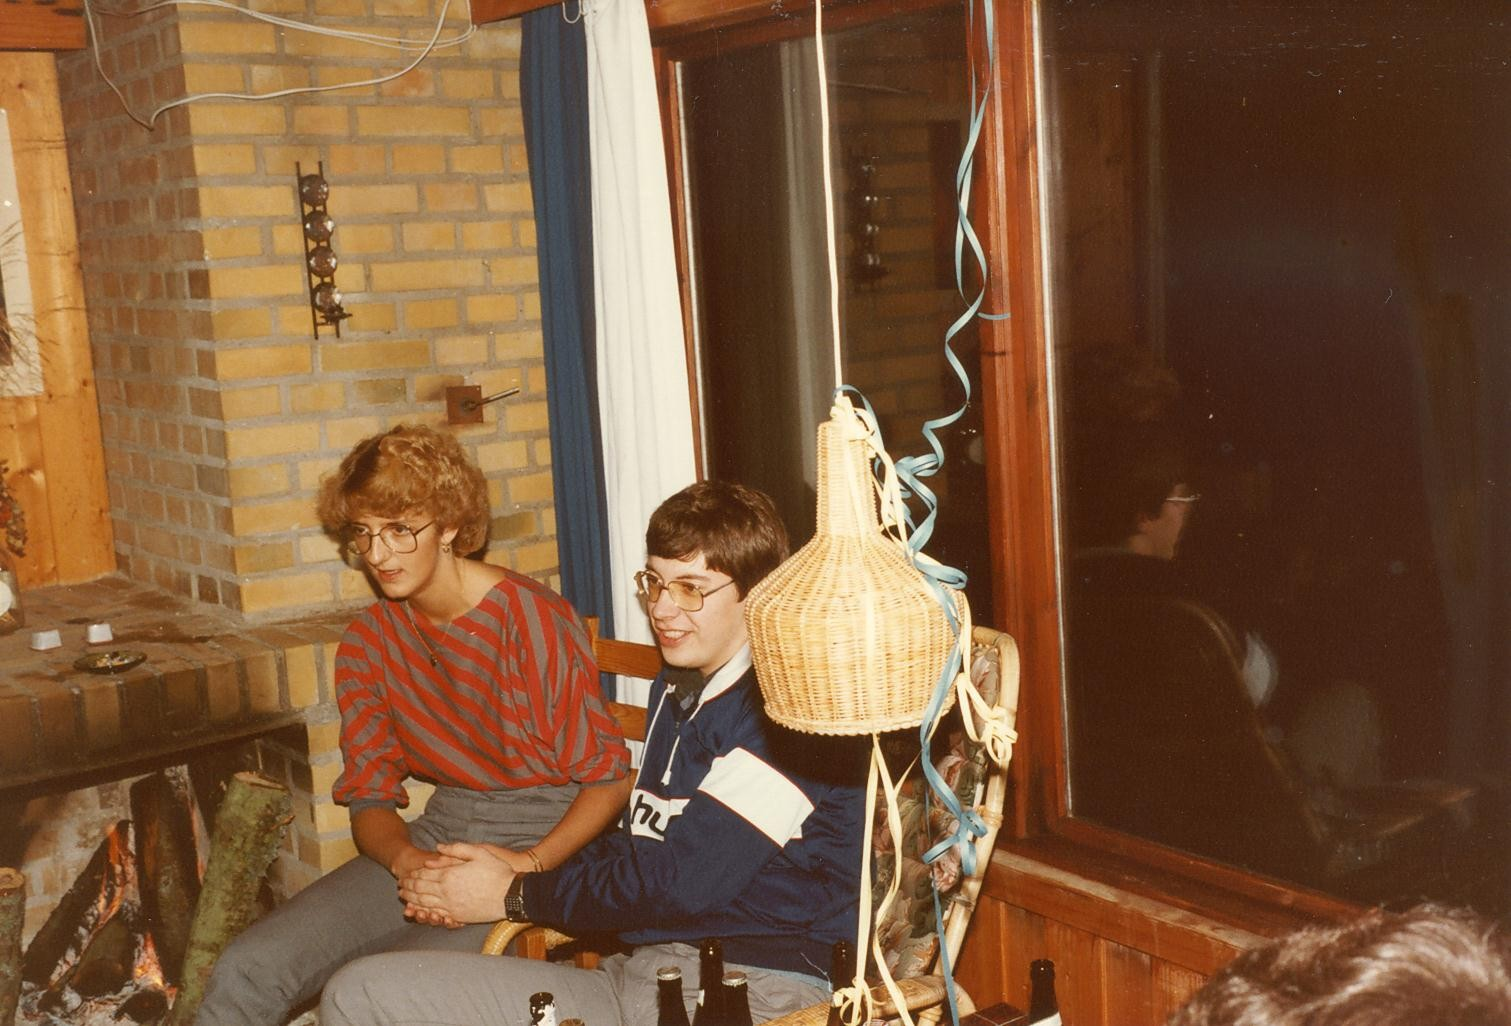 Scan11358 31-12-1983